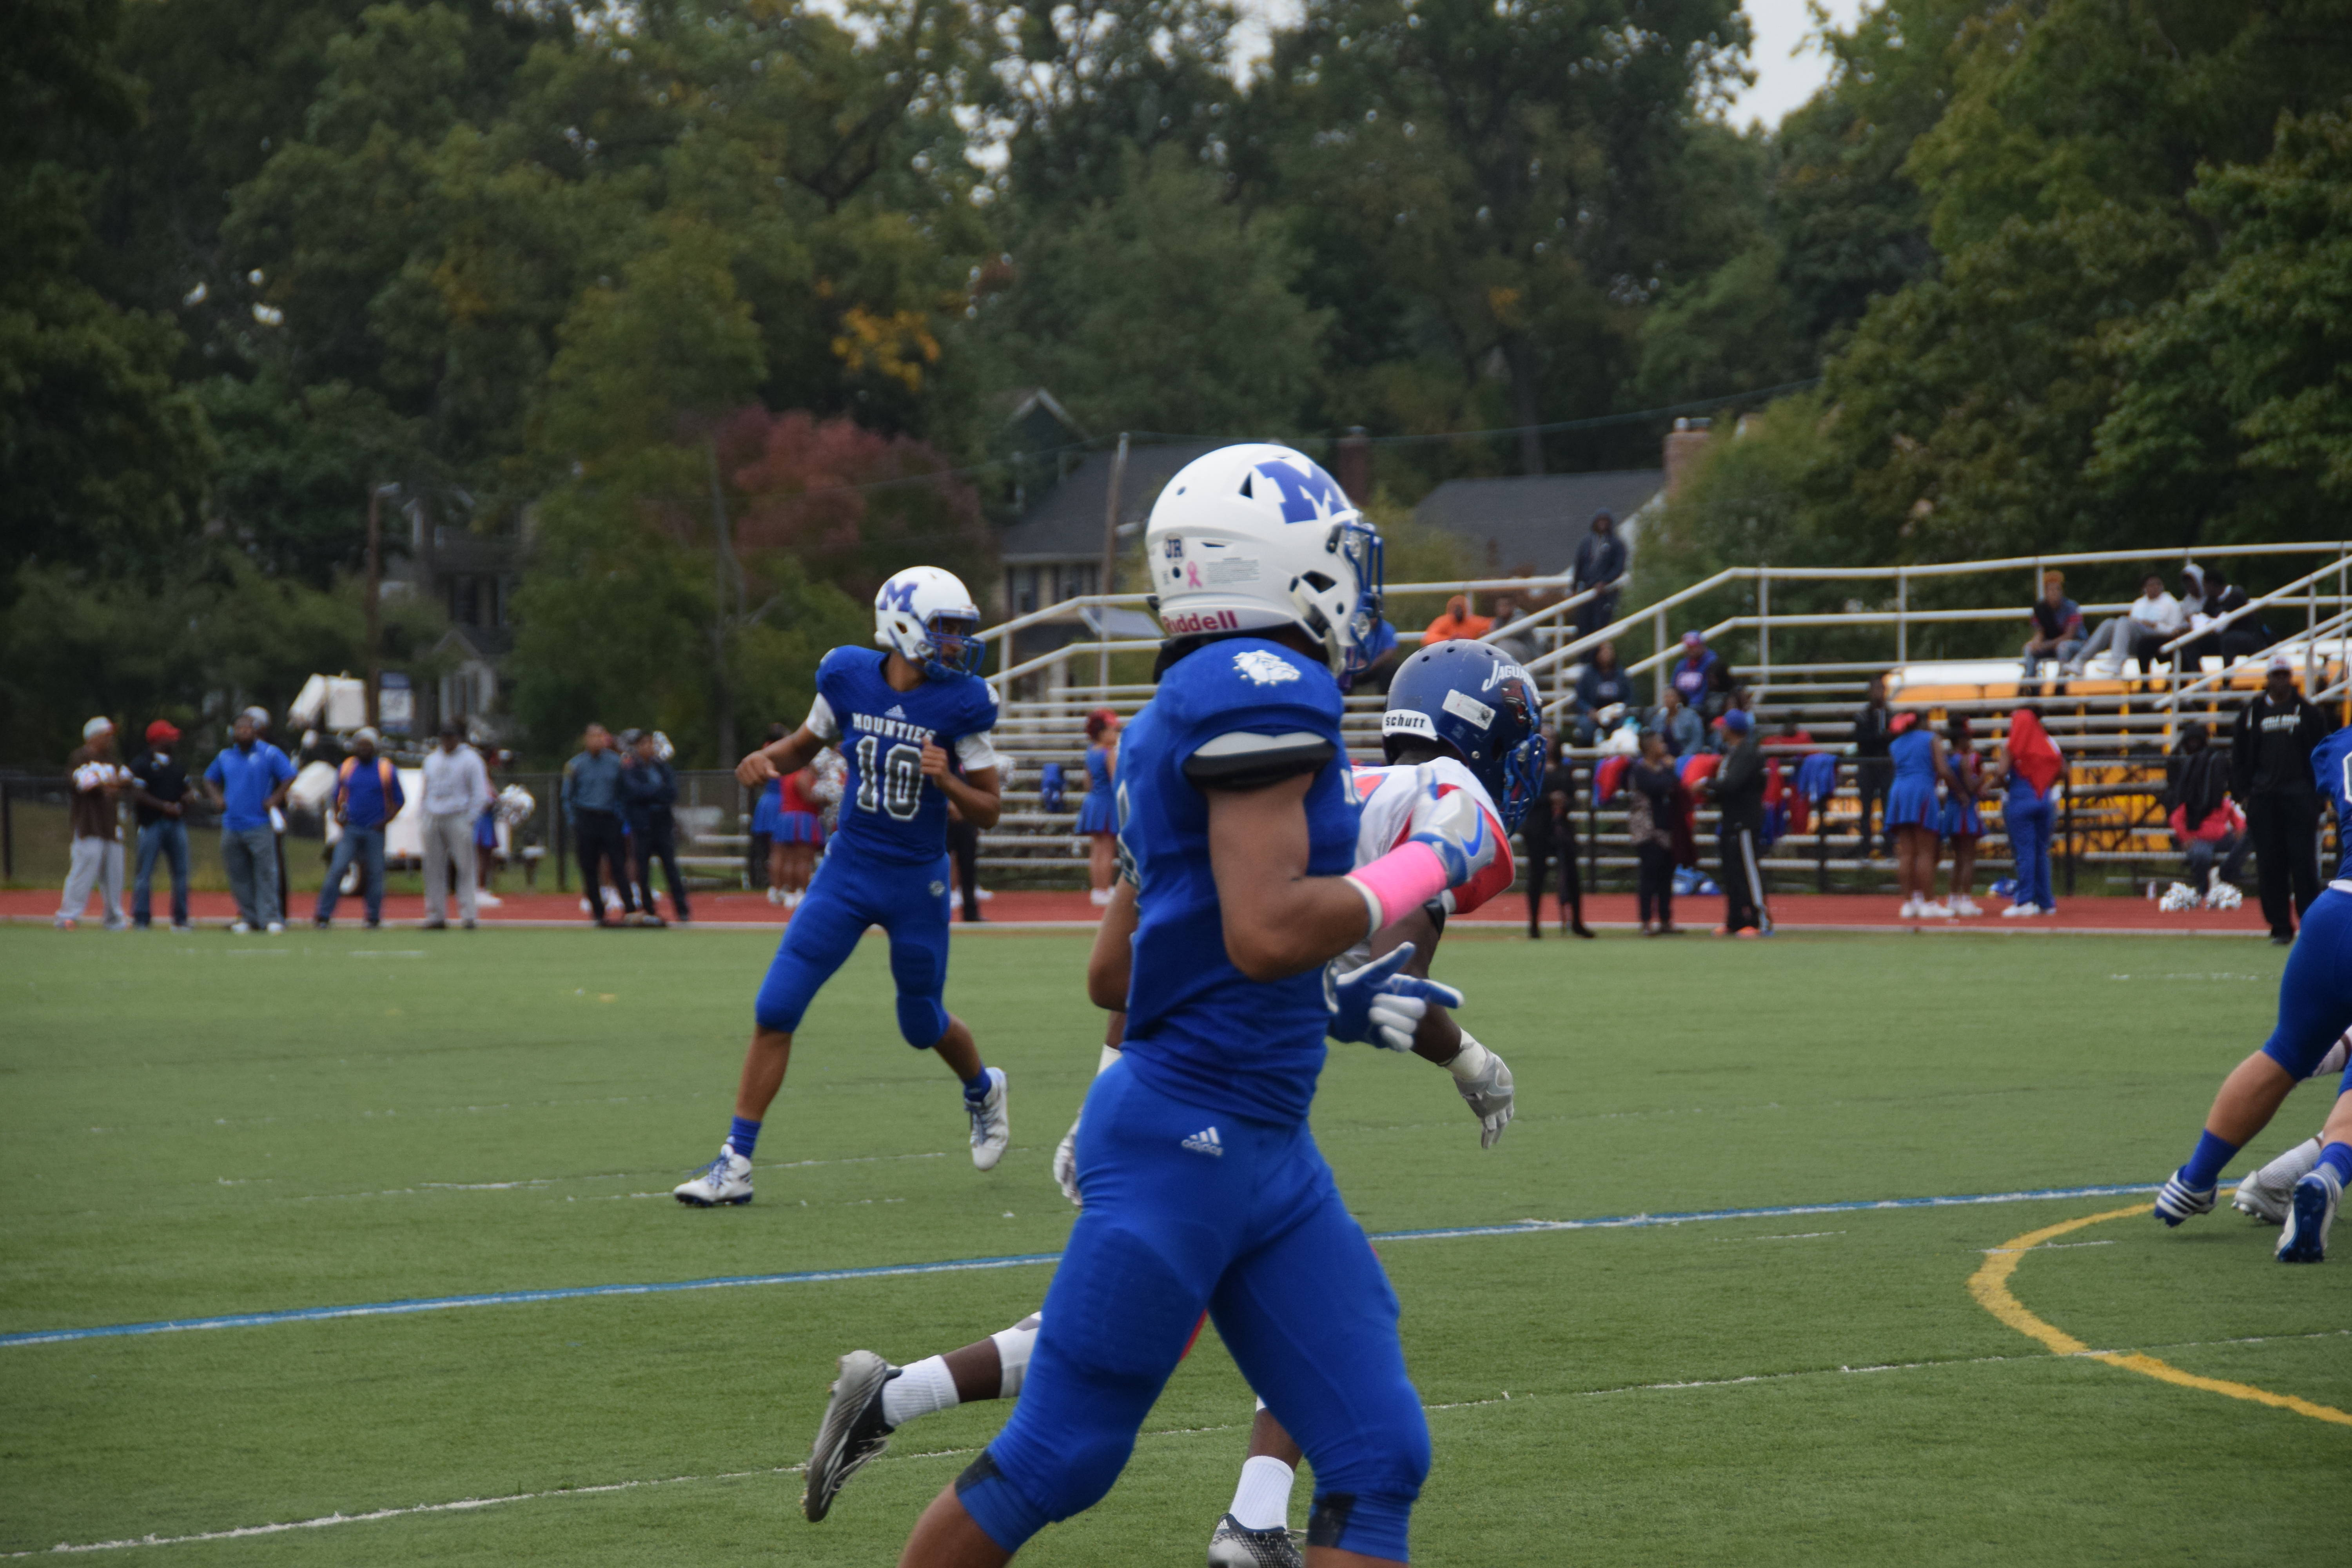 Montclair Hs Football Overpowers East Orange 55 10 Tapinto